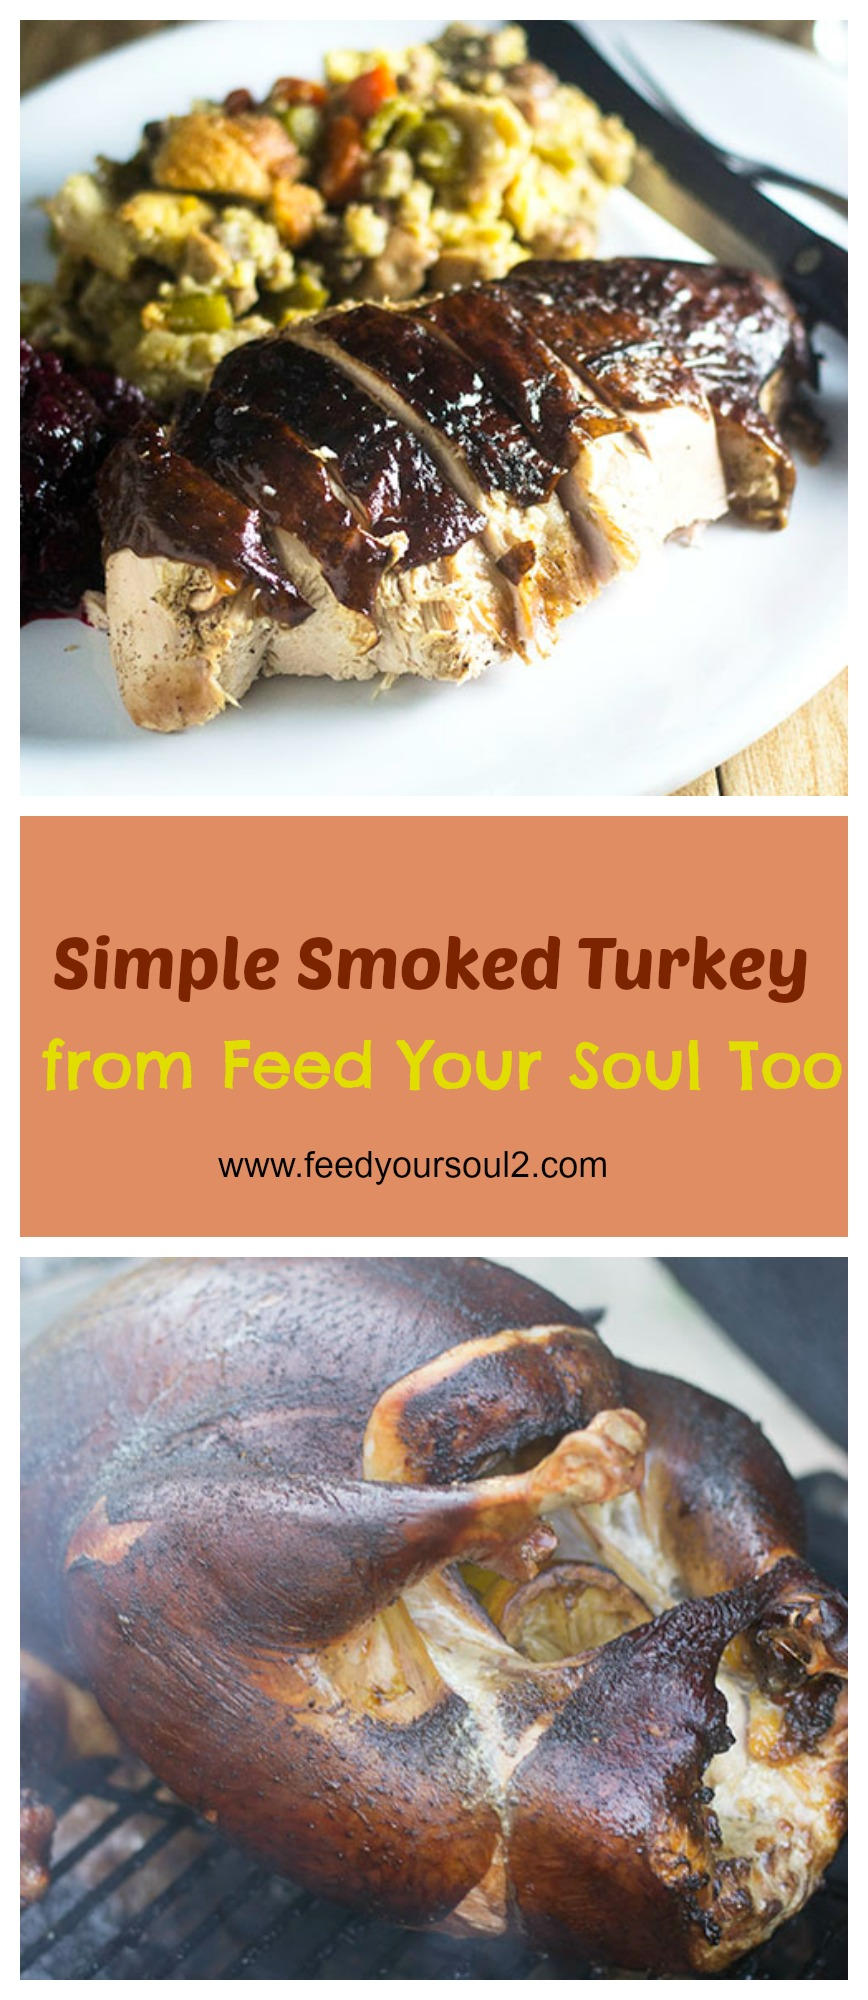 Smoked Turkey for Thanksgiving #Thanksgiving #turkey #smoking #brine | feedyoursoul2.com